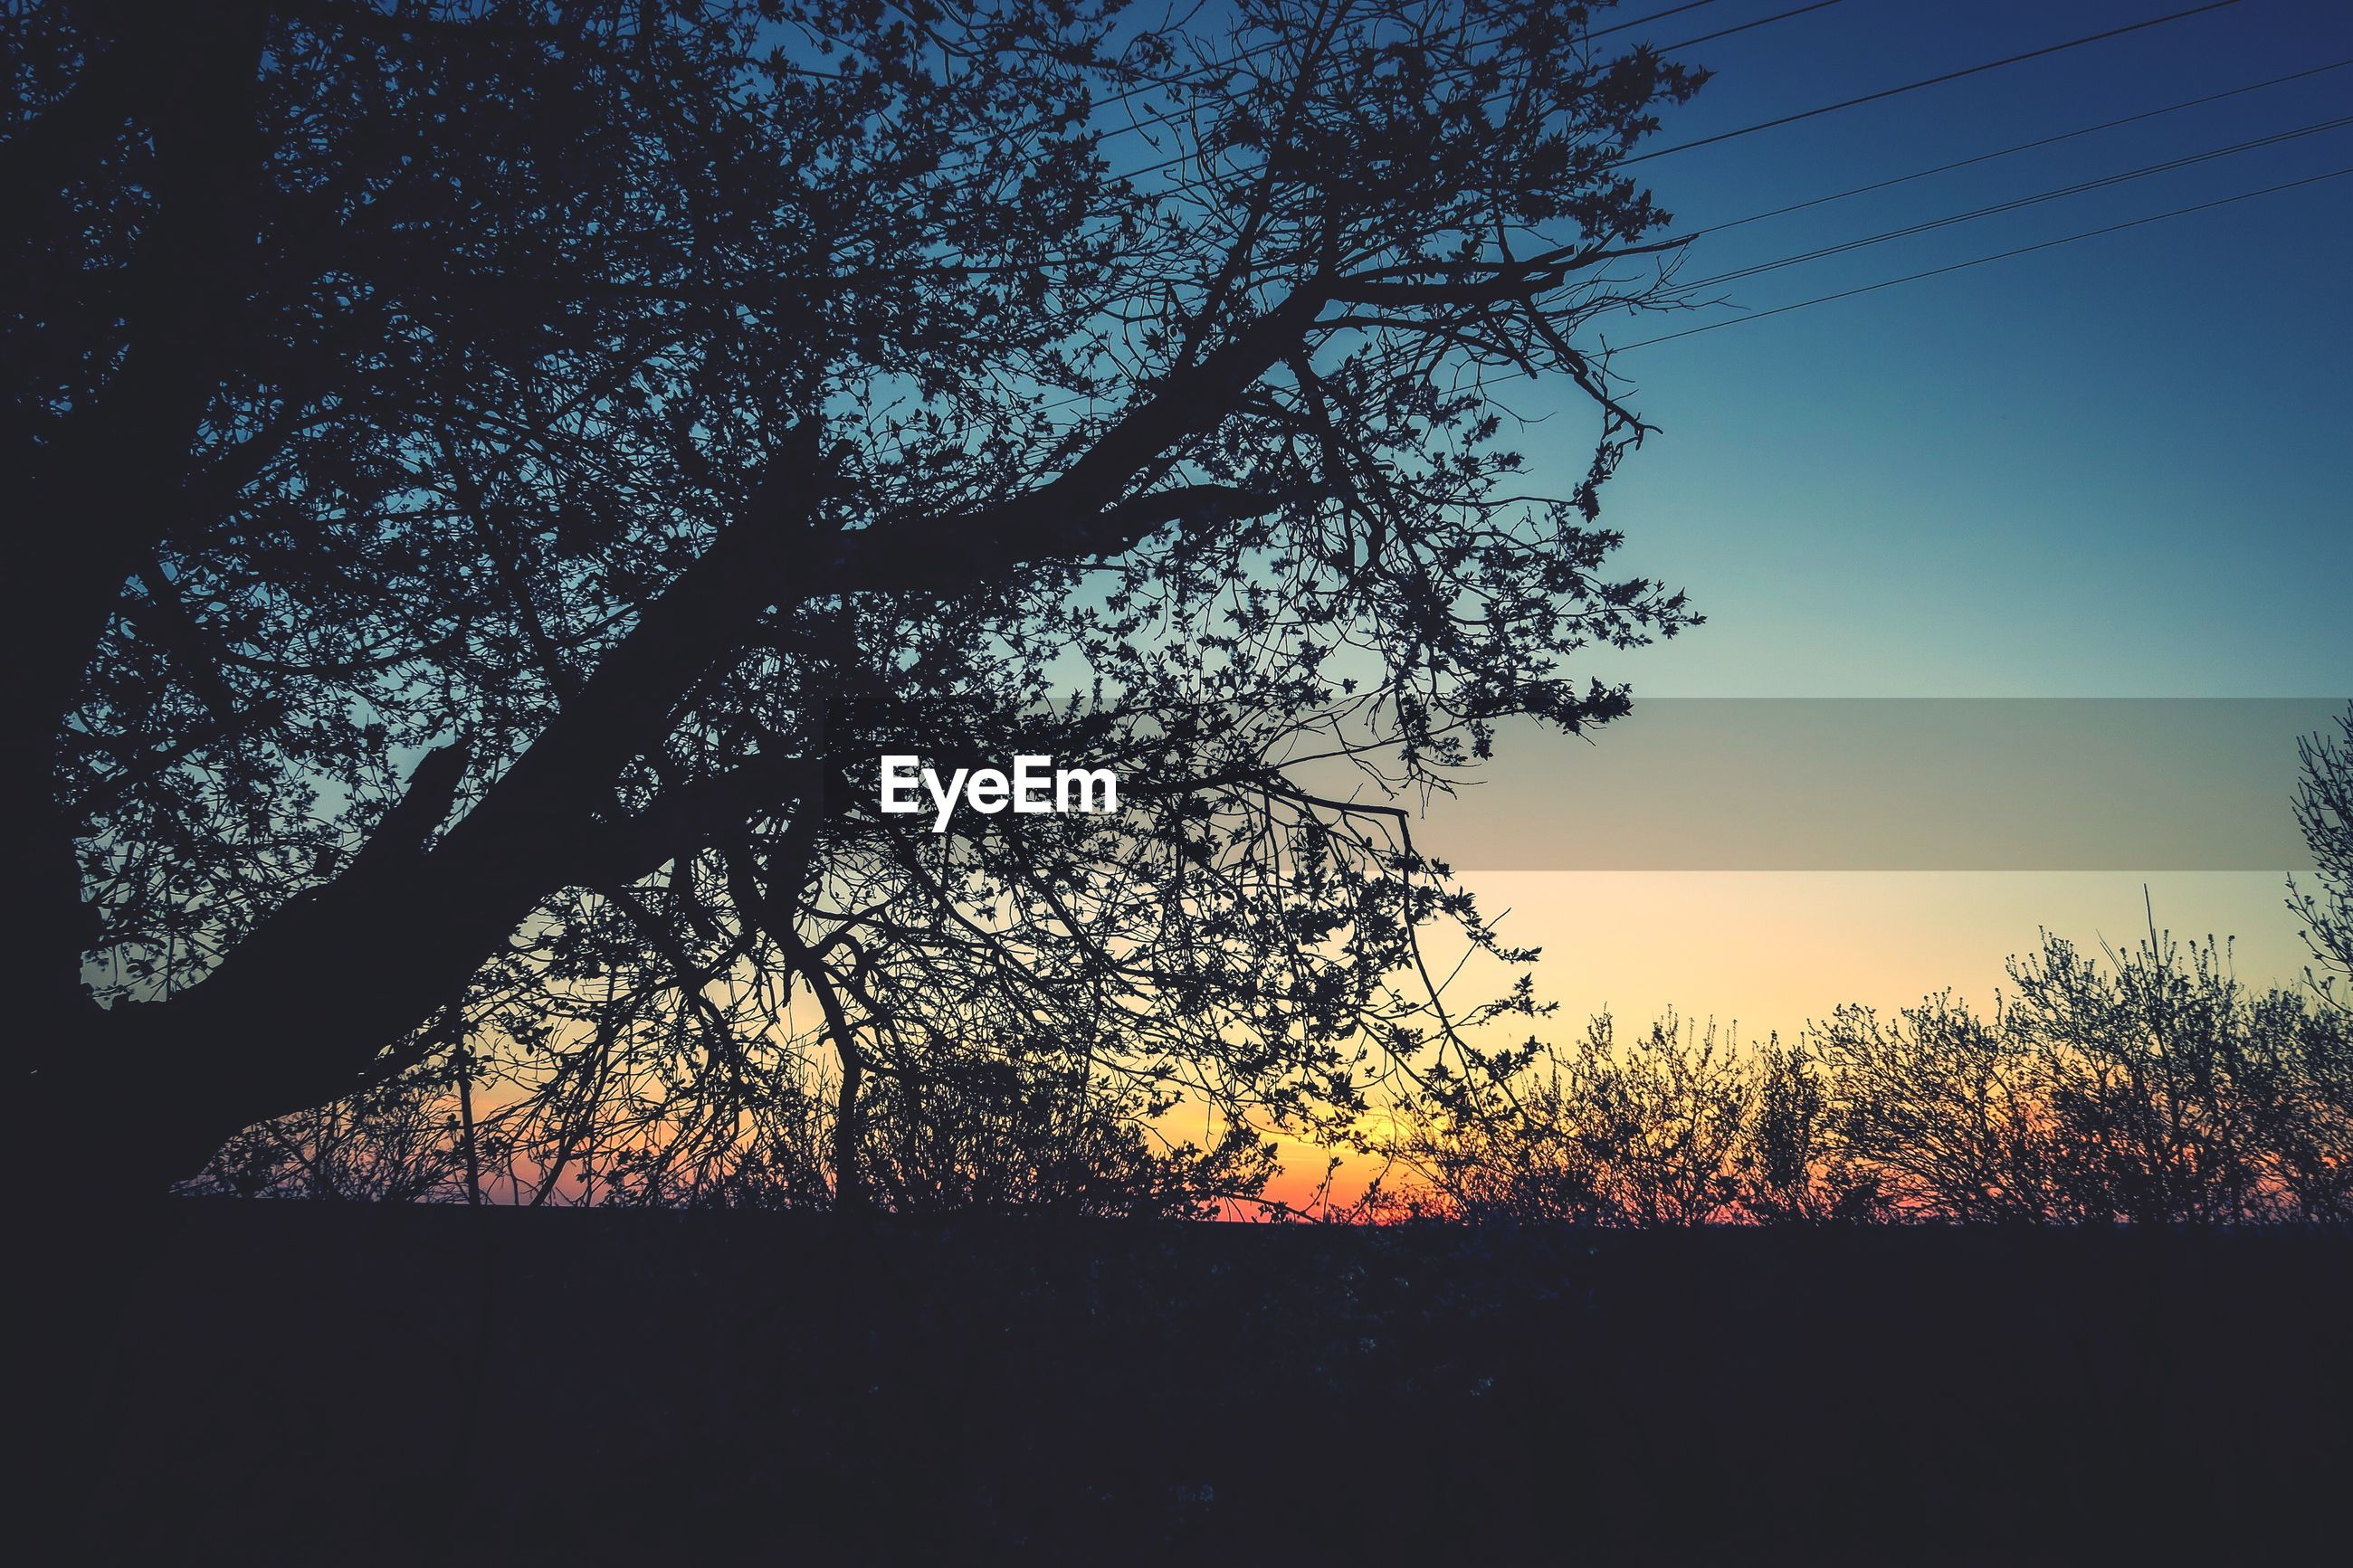 silhouette, tree, sunset, tranquility, branch, nature, beauty in nature, scenics, tranquil scene, bare tree, clear sky, low angle view, sky, growth, sunlight, landscape, field, outdoors, idyllic, no people